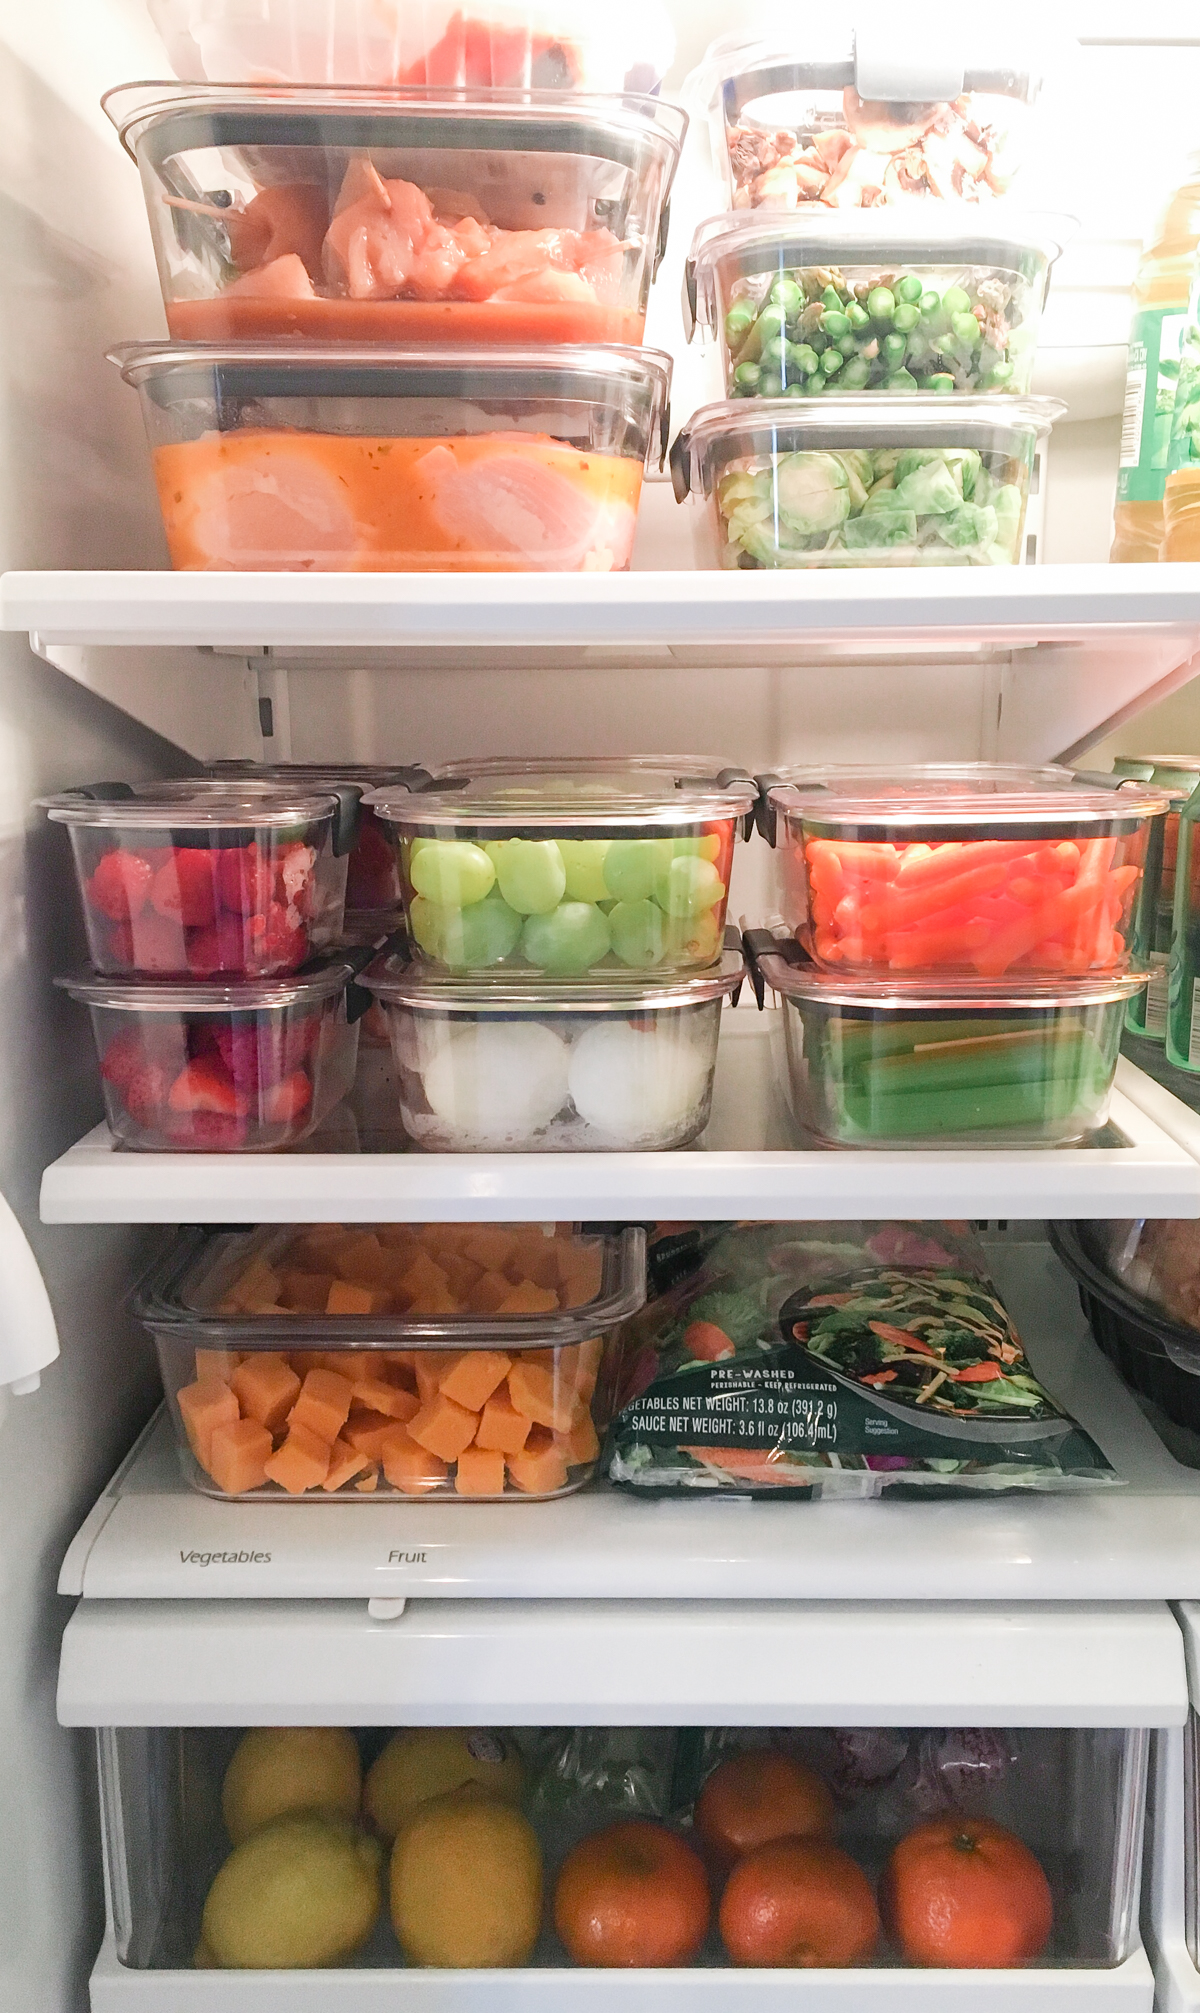 Rubbermaid Brilliance containers for meal prep.